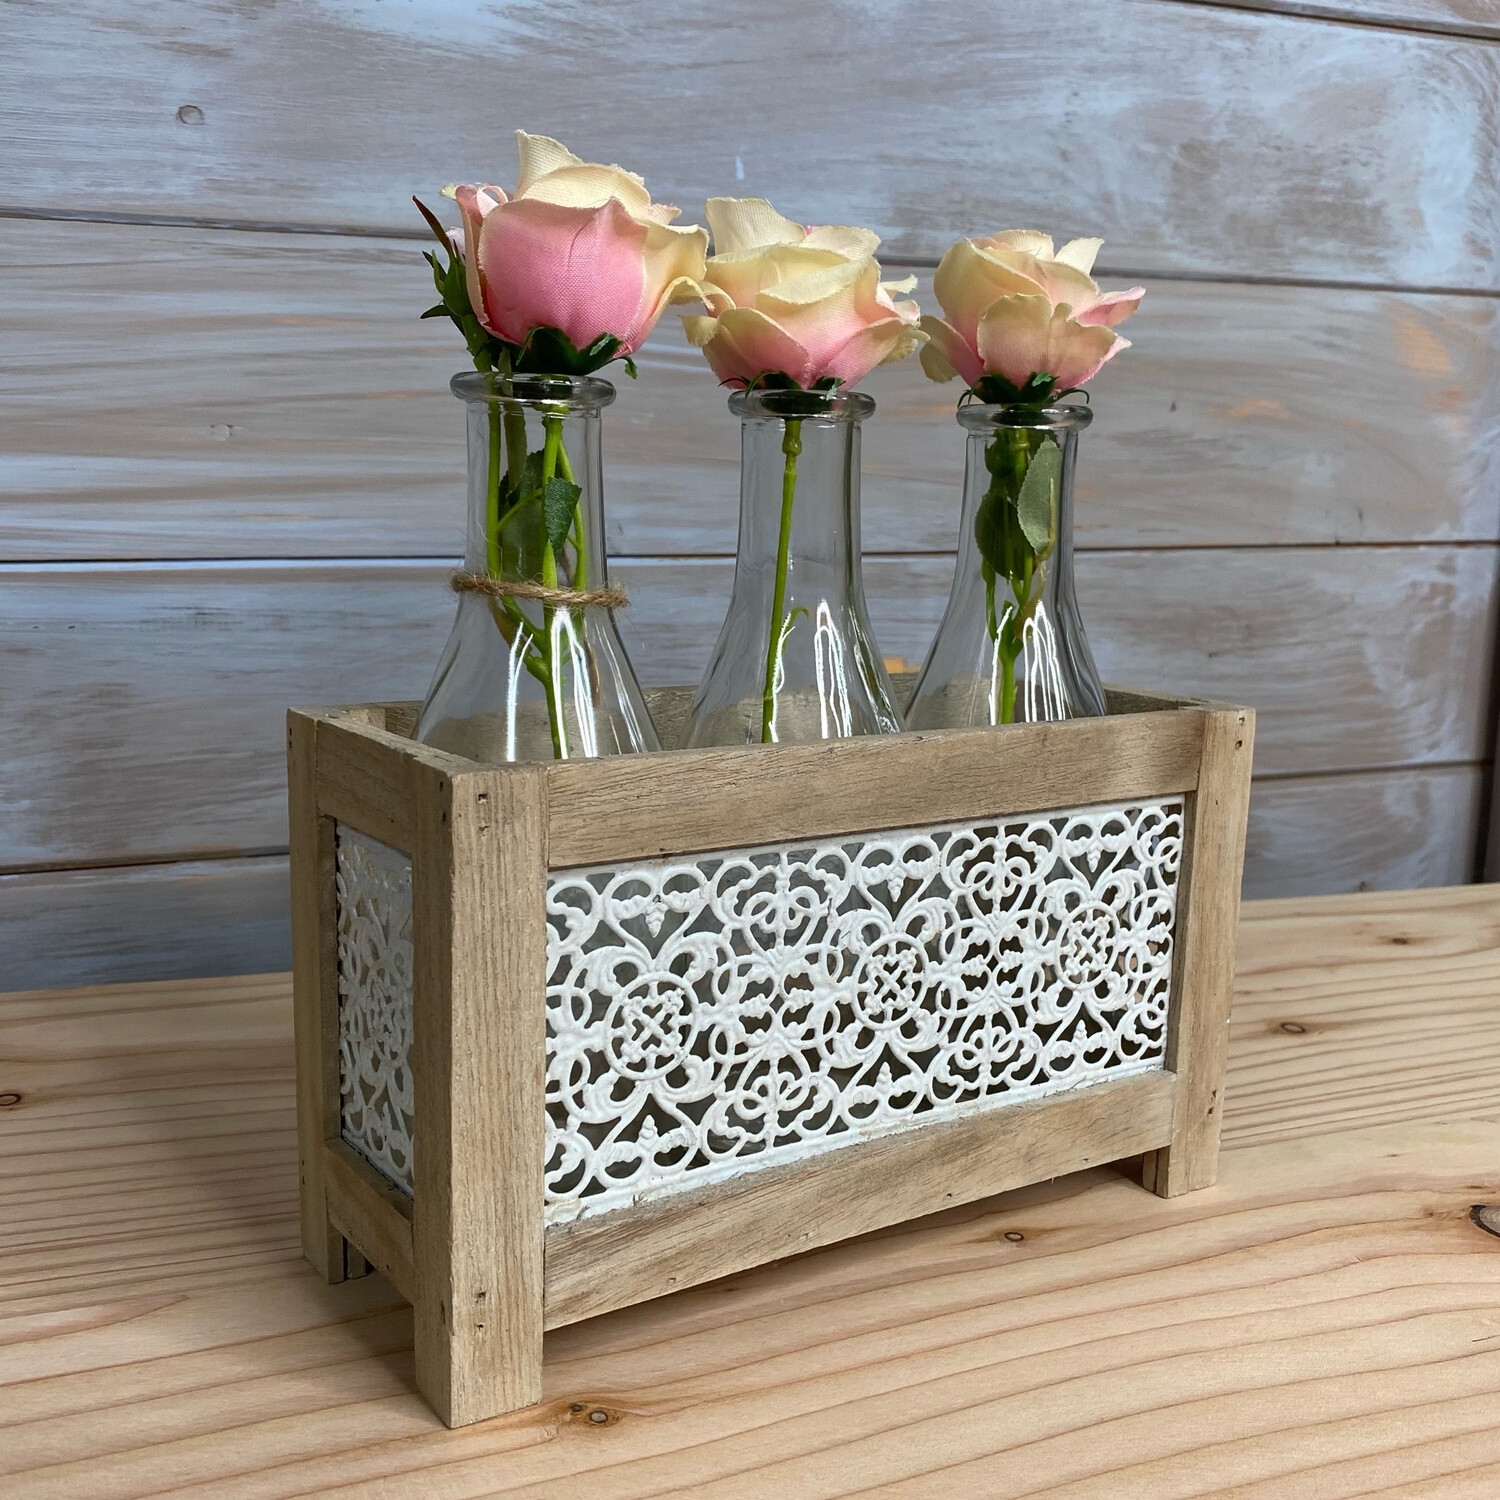 Wooden Milk Bottle Crate